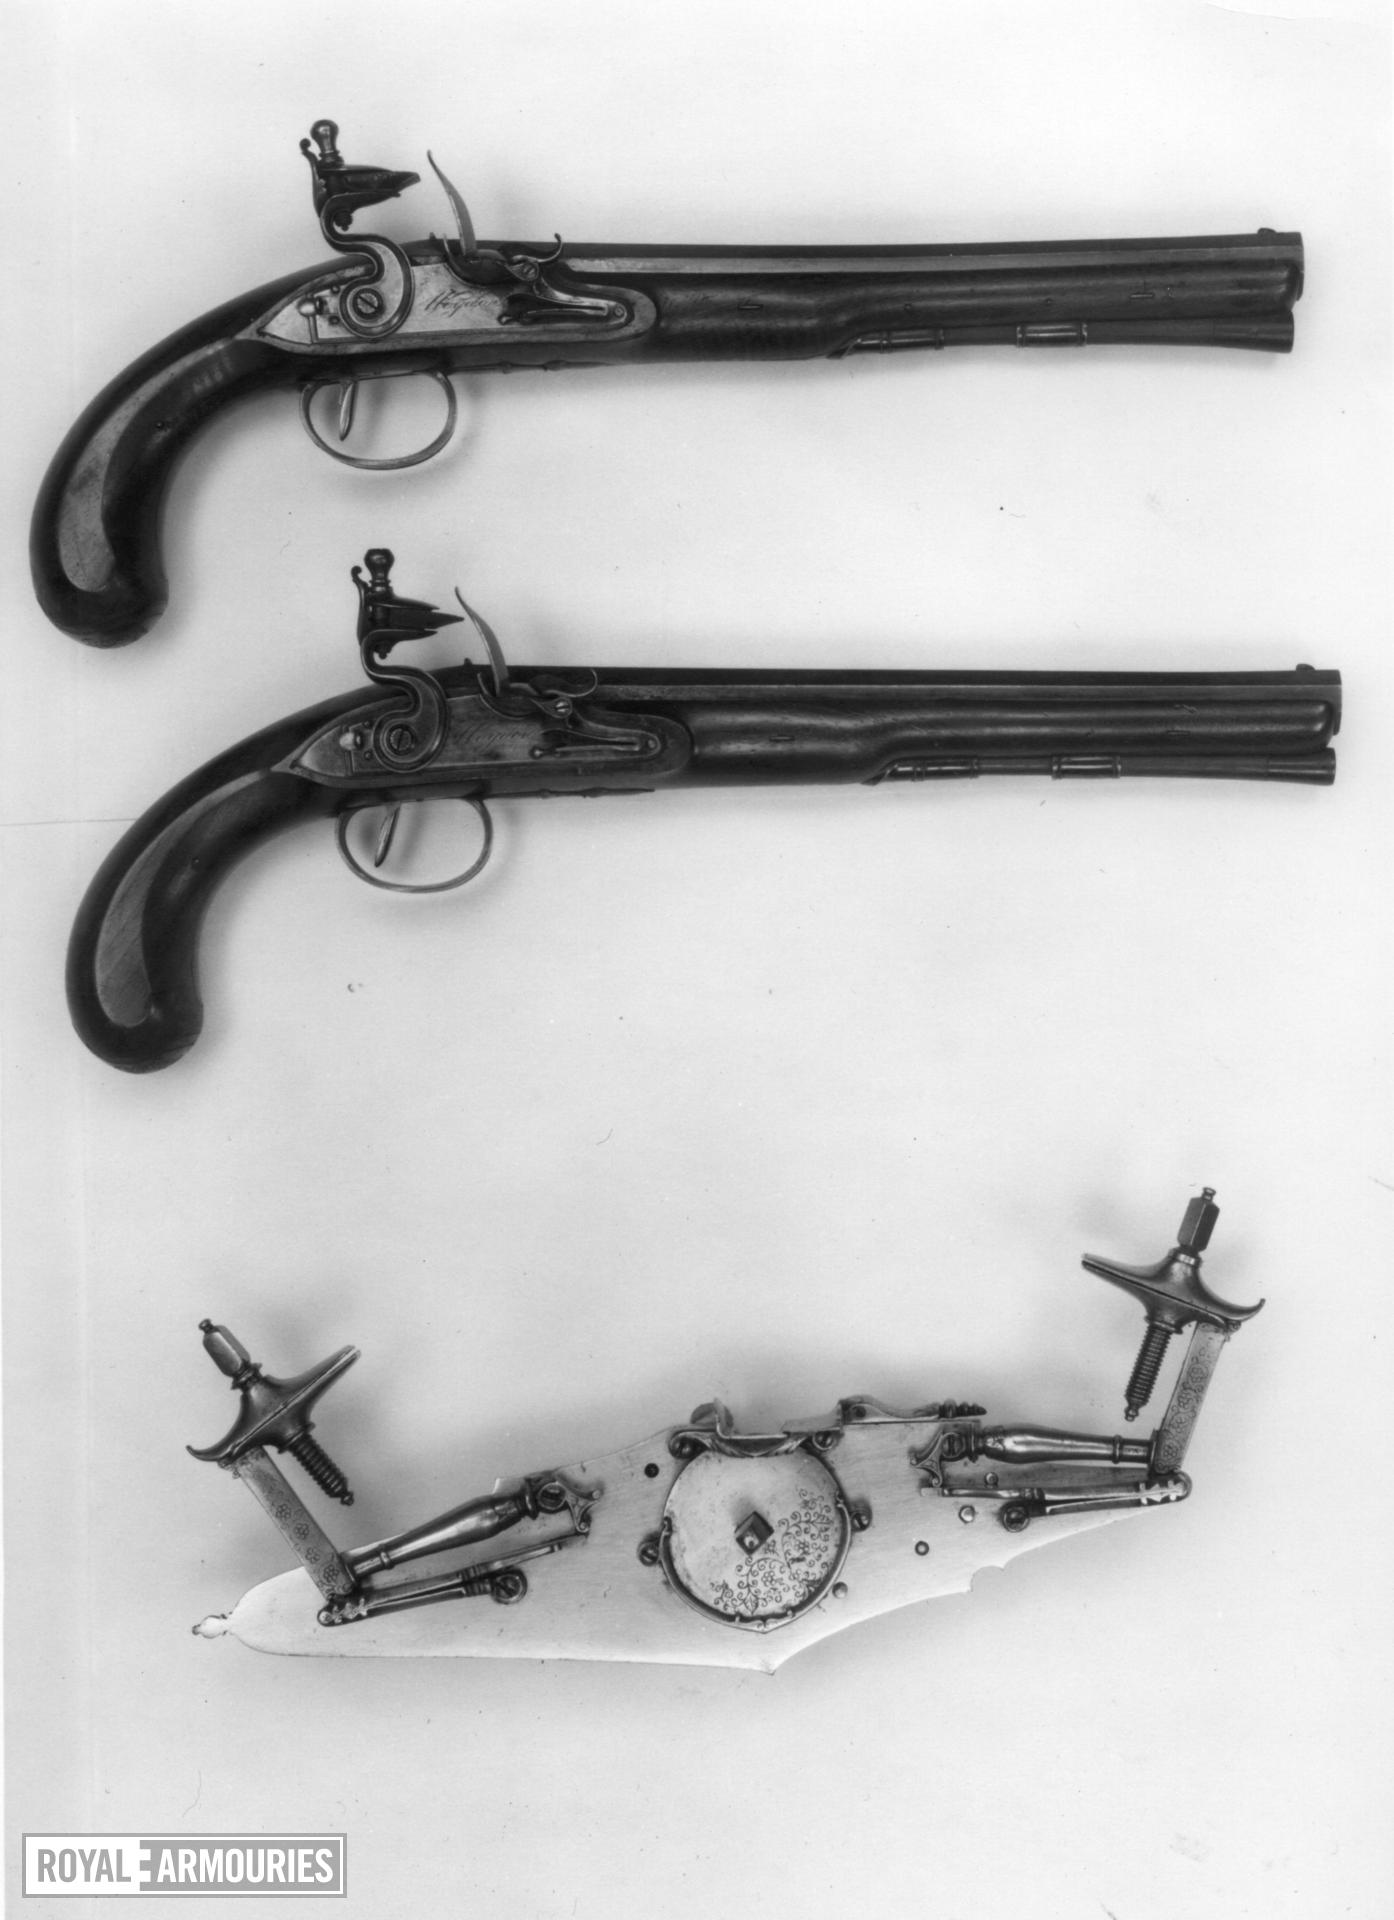 Flintlock duelling pistol By Wogdon One of a pair see XII.1369 A. For case, see XII.1369 C